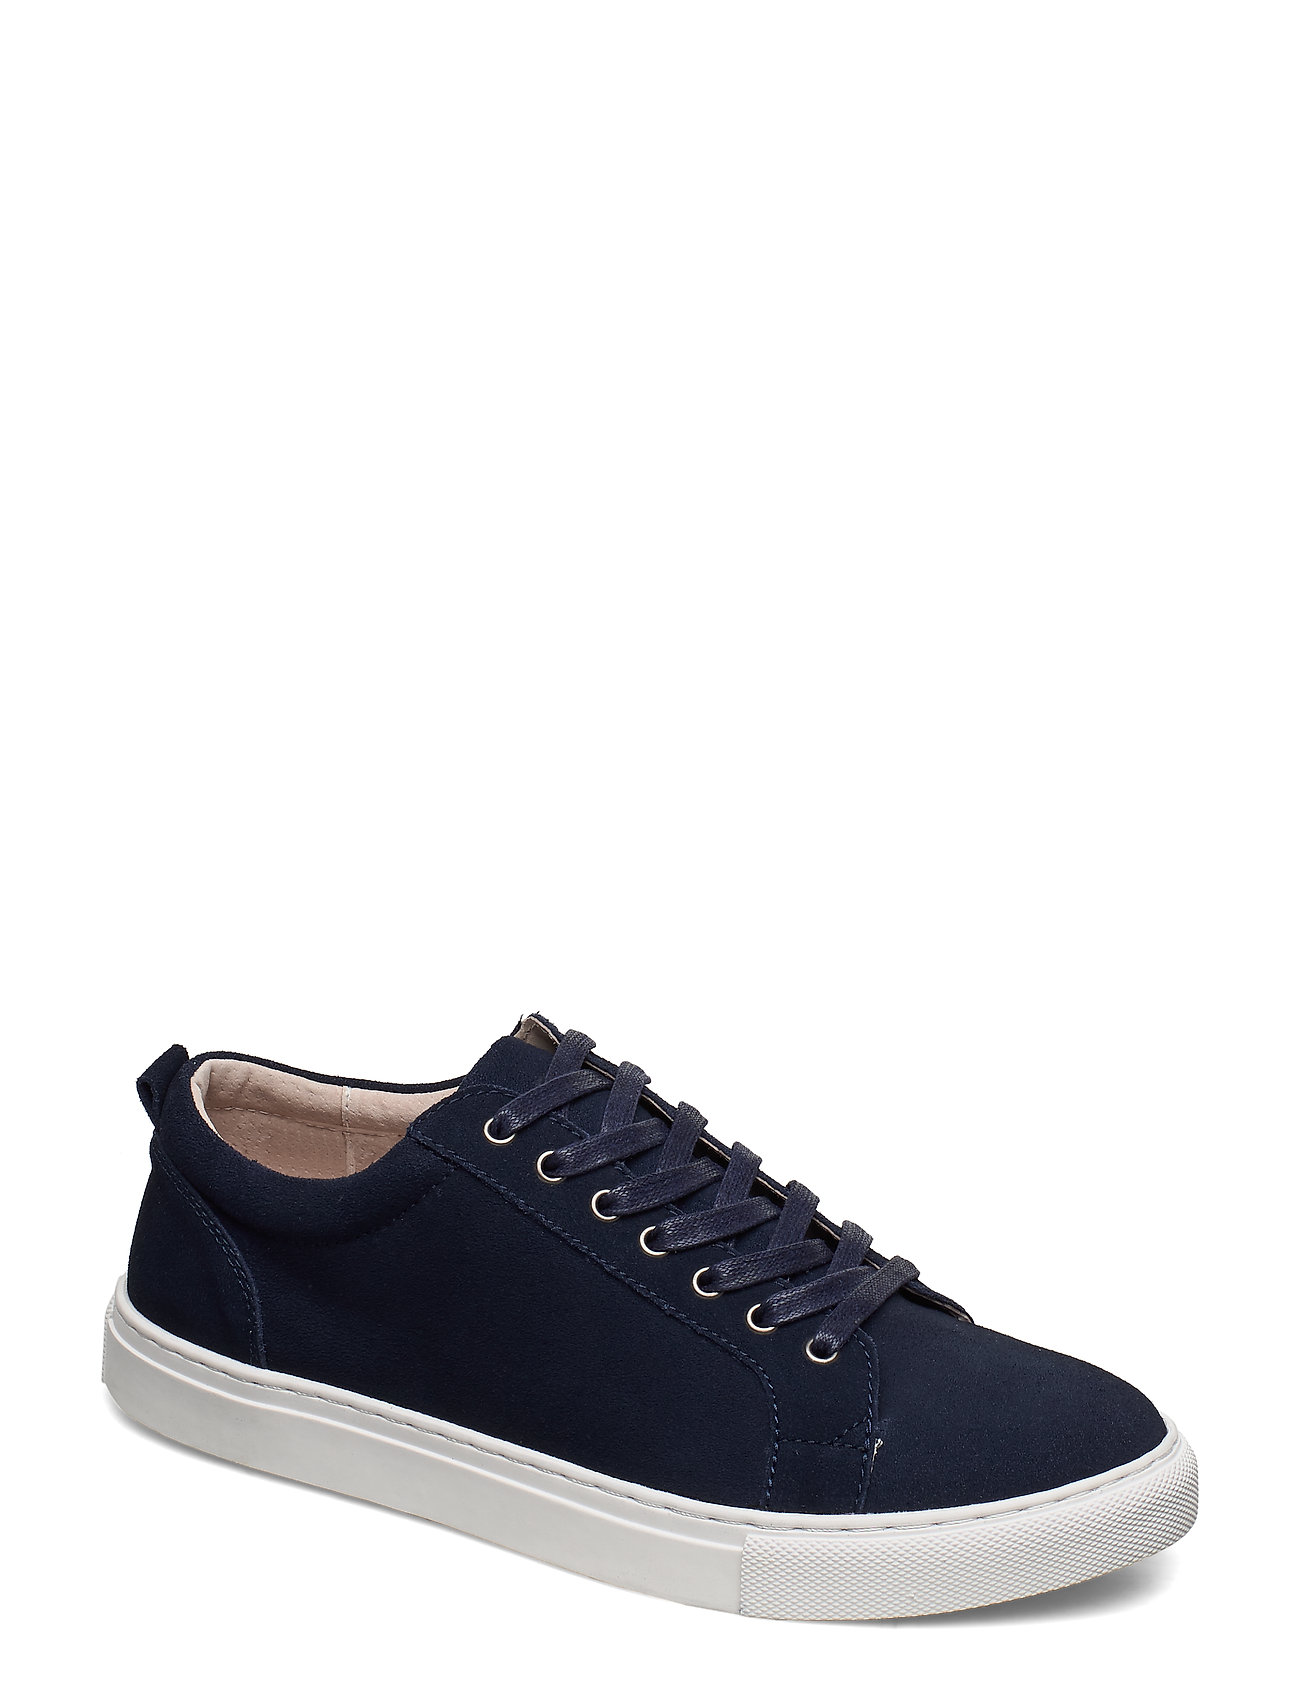 Image of Stb-Cole Ii S Low-top Sneakers Blå Shoe The Bear (3455494601)